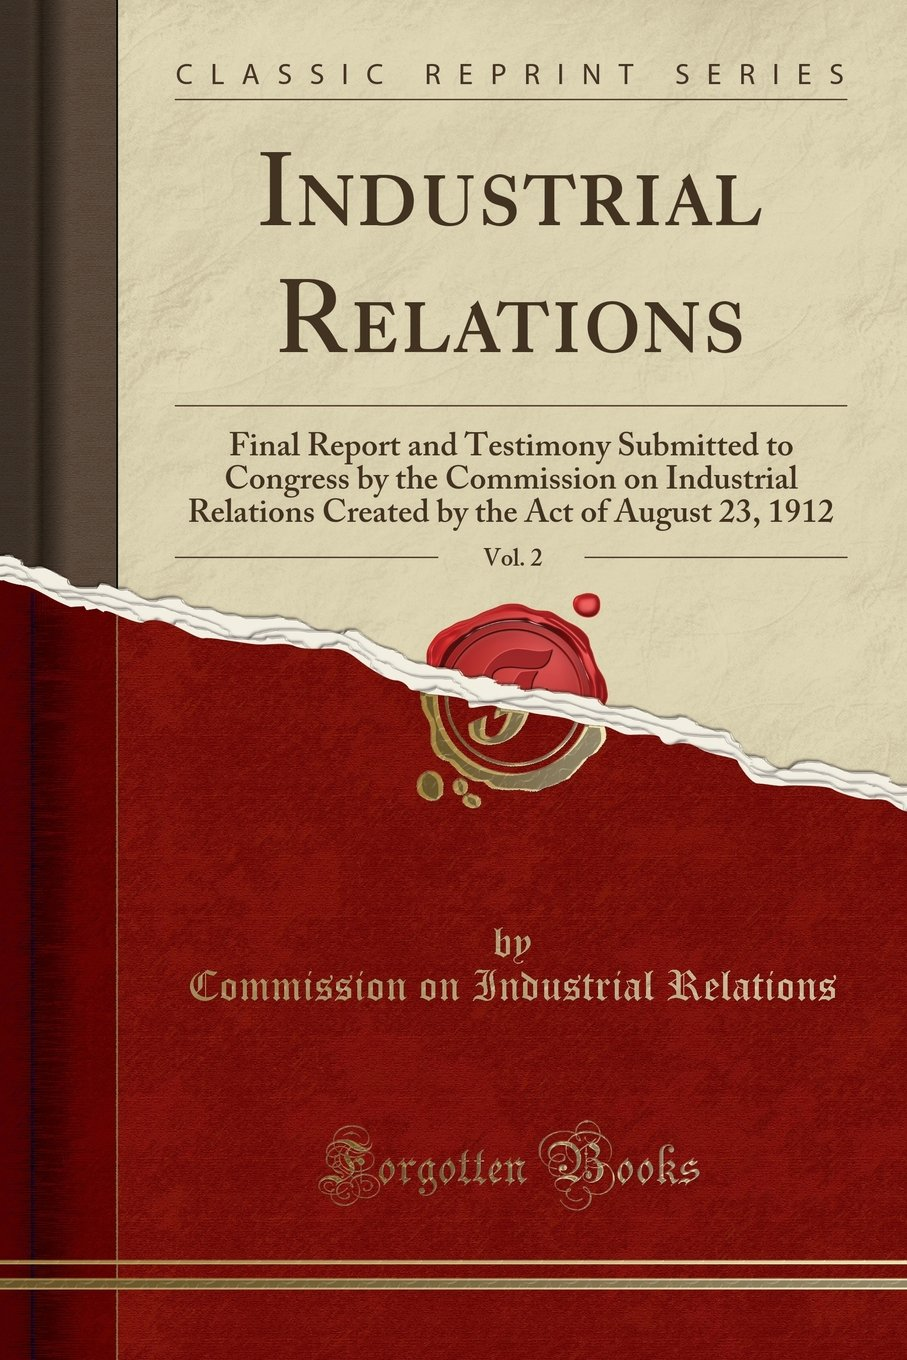 Download Industrial Relations, Vol. 2: Final Report and Testimony Submitted to Congress by the Commission on Industrial Relations Created by the Act of August 23, 1912 (Classic Reprint) pdf